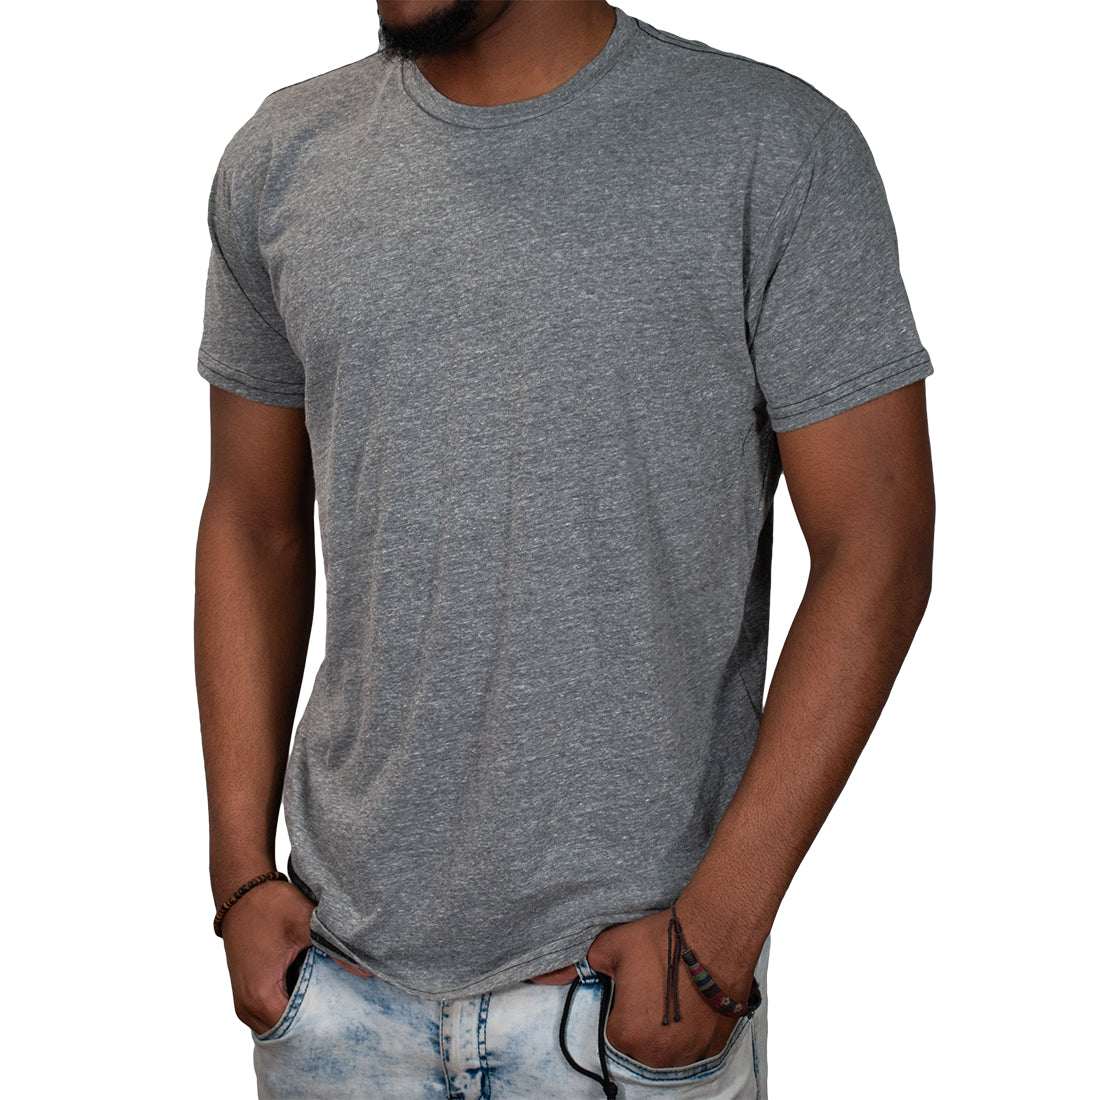 J. Williams Basics Tri-Blend Unisex Tee